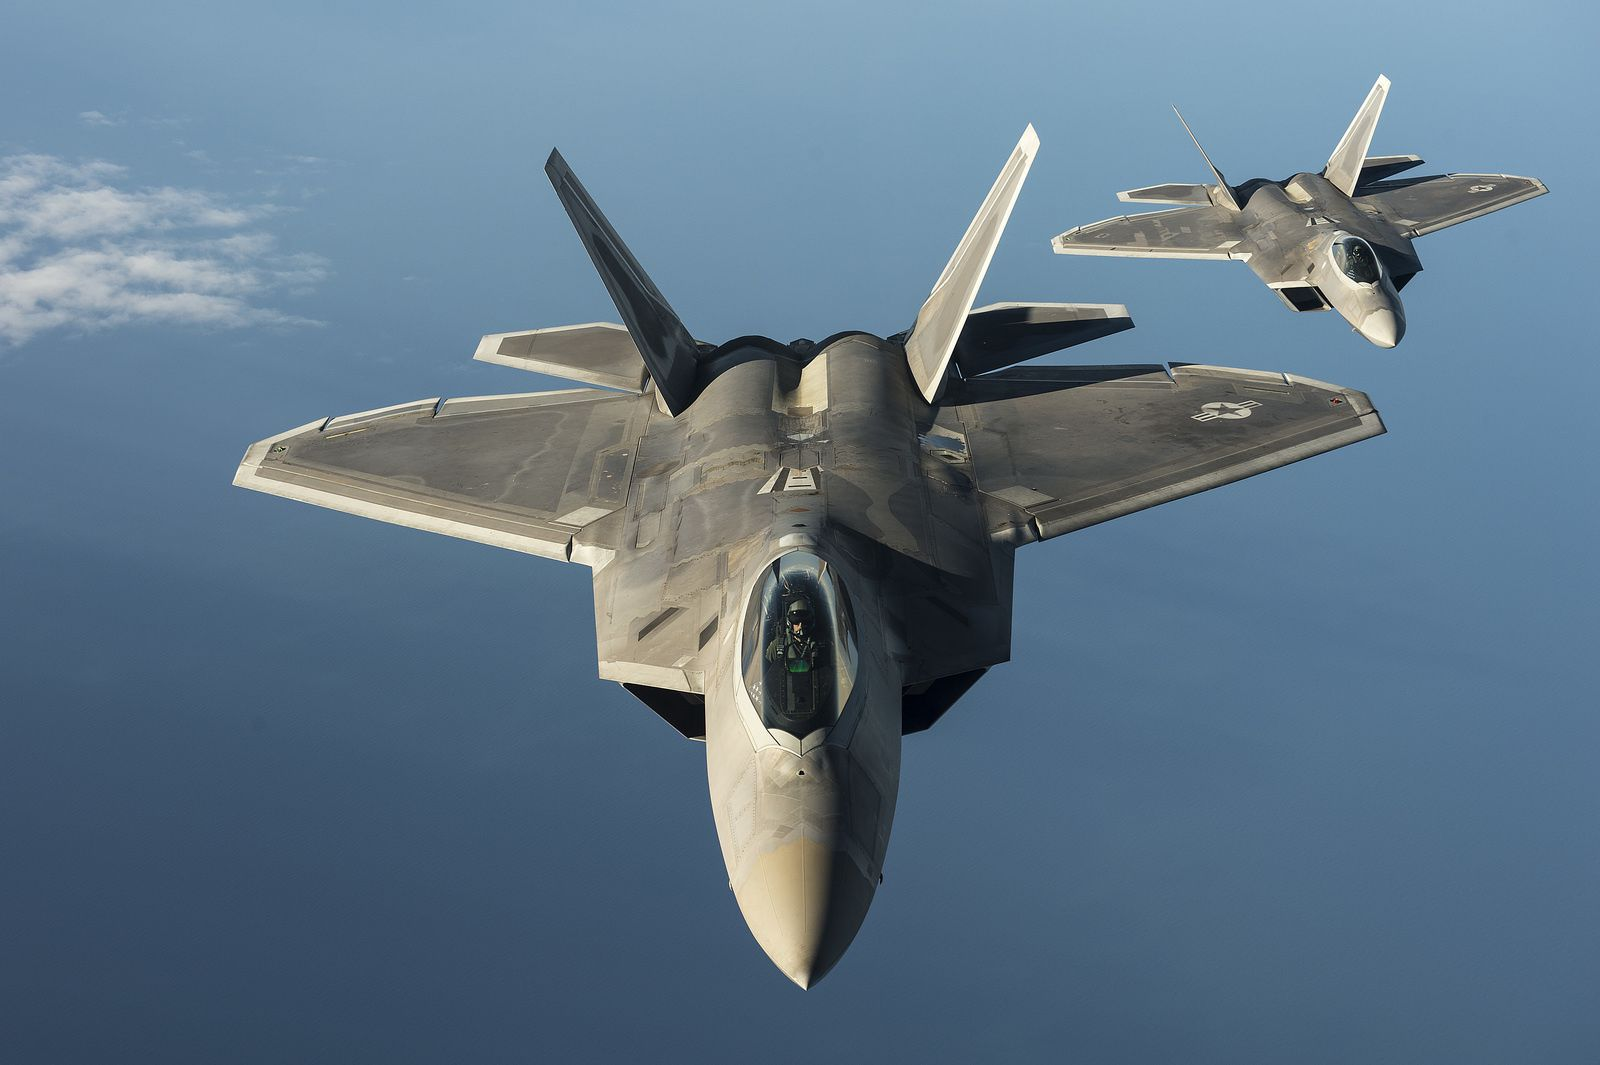 Le commandant de l'USAFE en Europe veut un déploiement permanent de F-22 Raptor en Europe